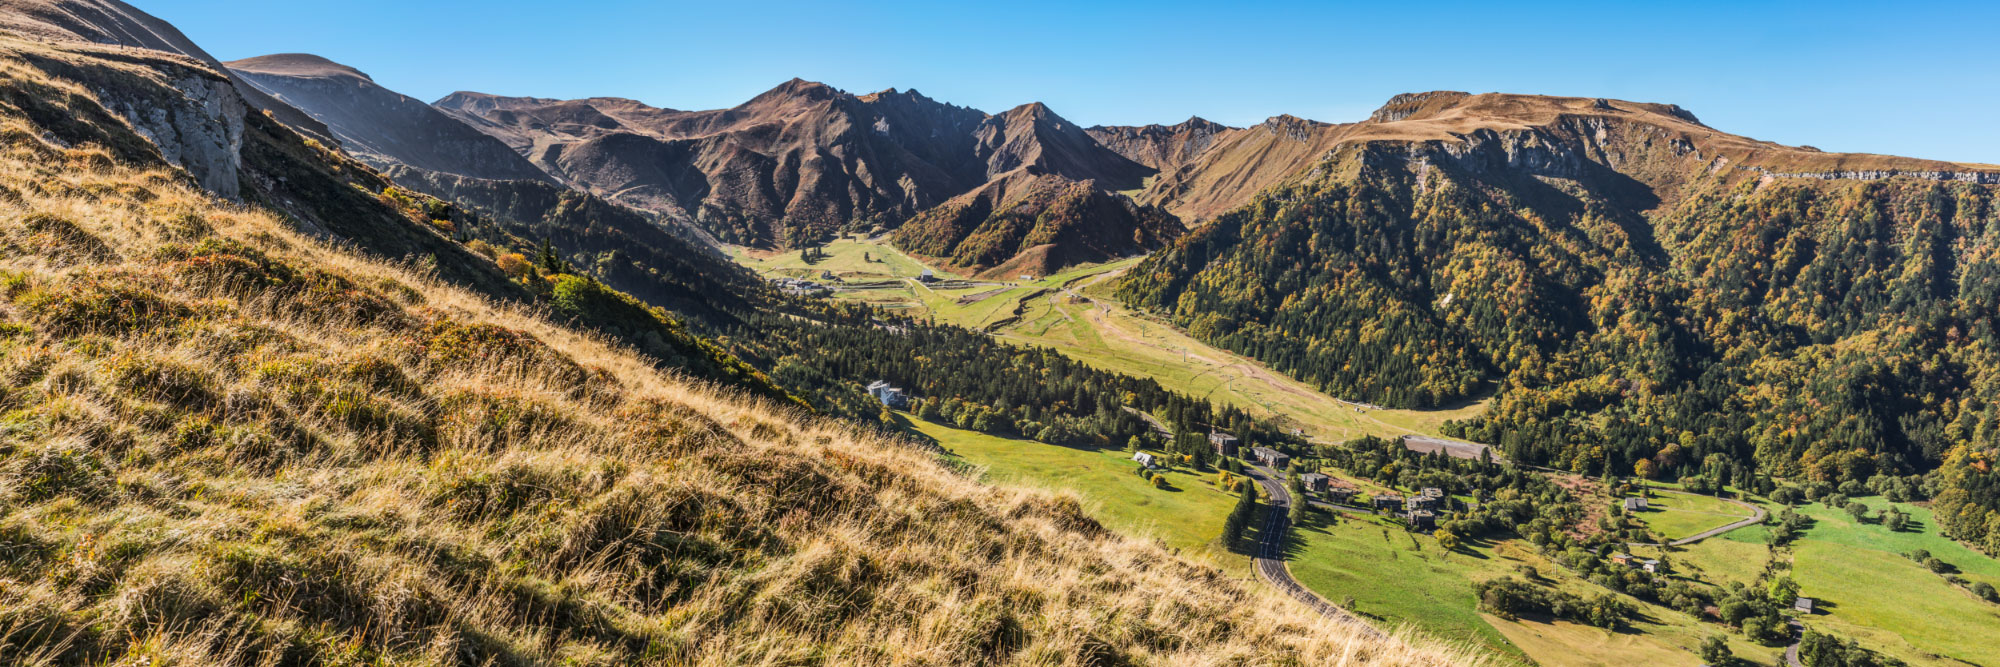 1-15232-france-puy-de-dome-le-sancy-vu-du-plateau-de-durbise-panorama-sentucq-h